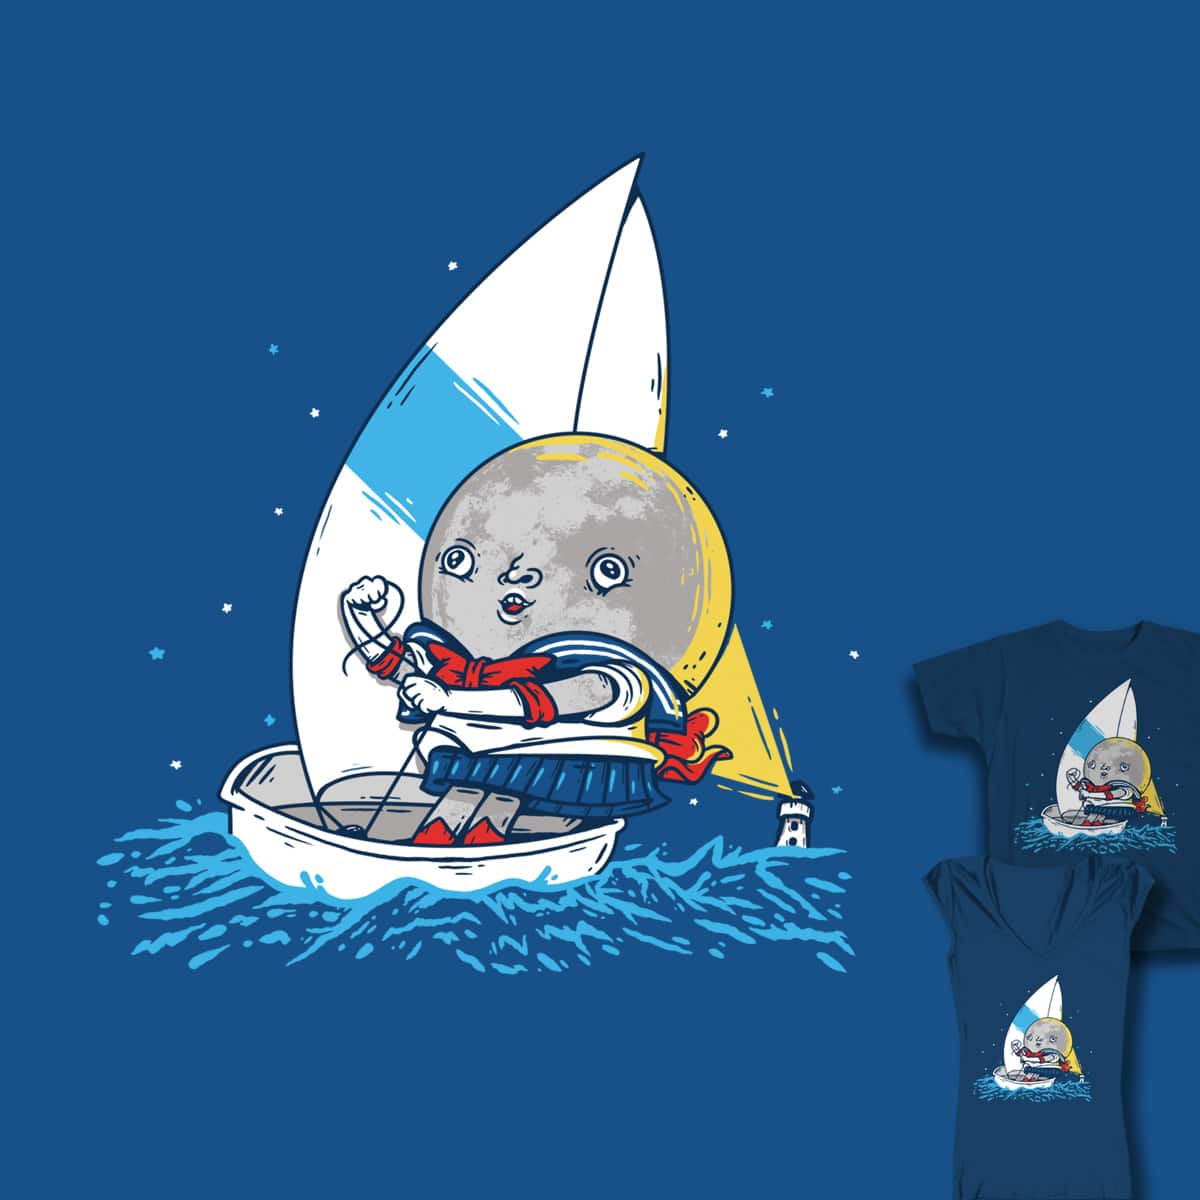 SAILOR-MOON by soloyo and zayedforsale on Threadless